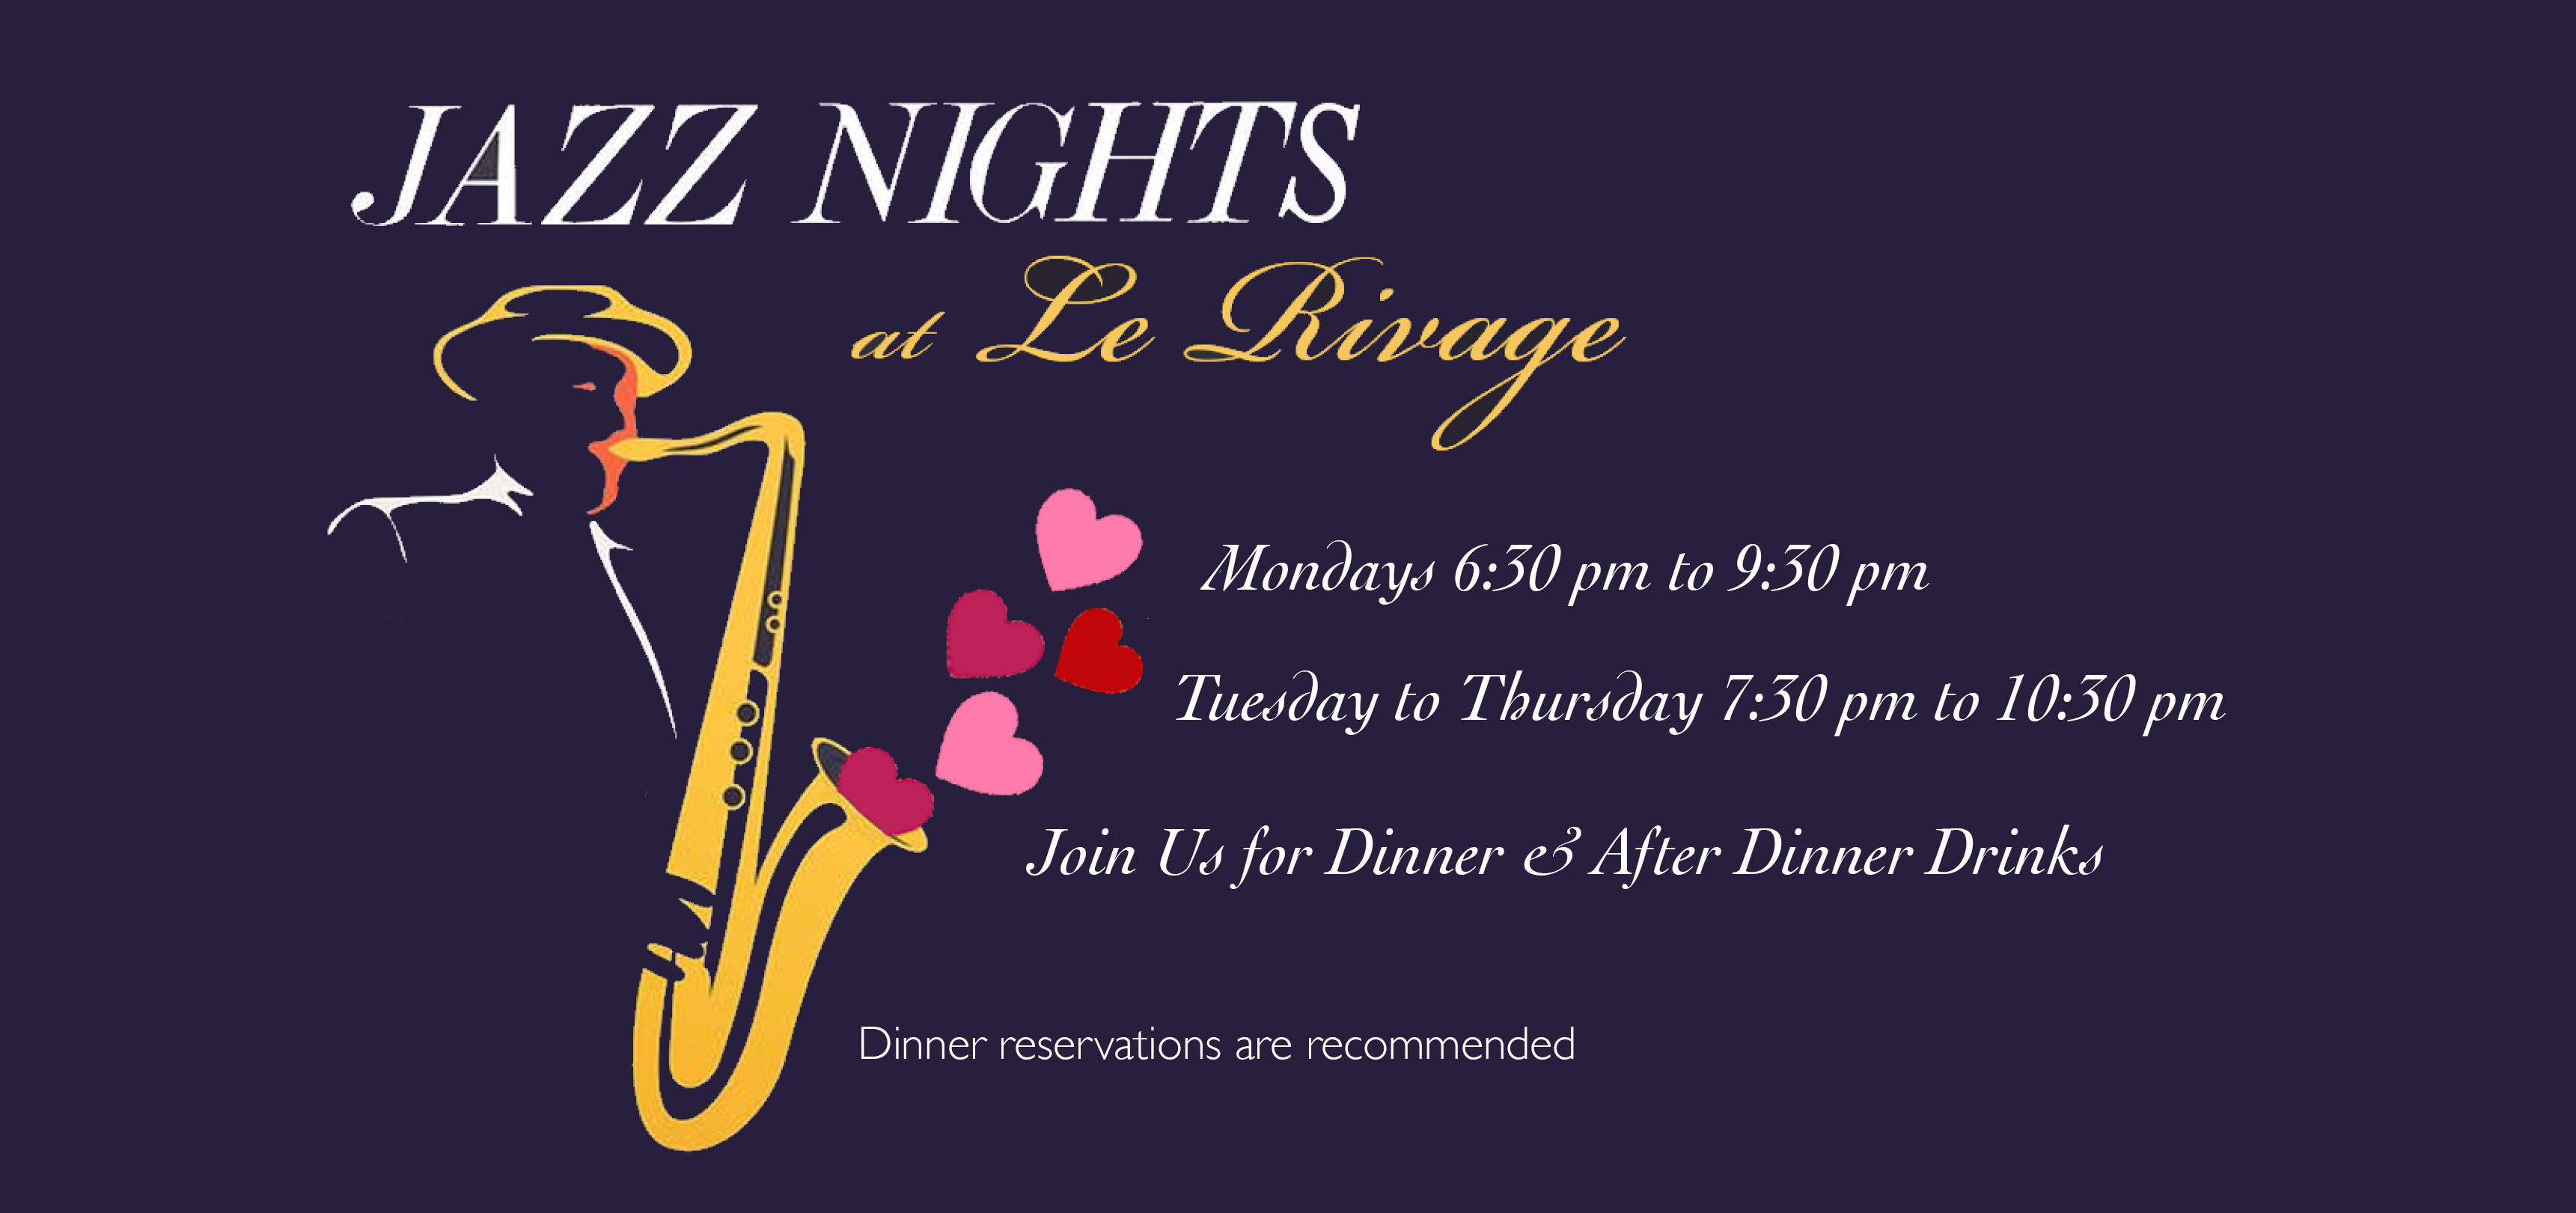 Jazz Nights at Le Rivage. Join us for dinner and after dinner drinks on Monday from 6:30 PM to 9:30 PM and on Tuesday to Thursday from 7:30 PM to 10:30 PM. Call (212) 765-7374 to make a reservation